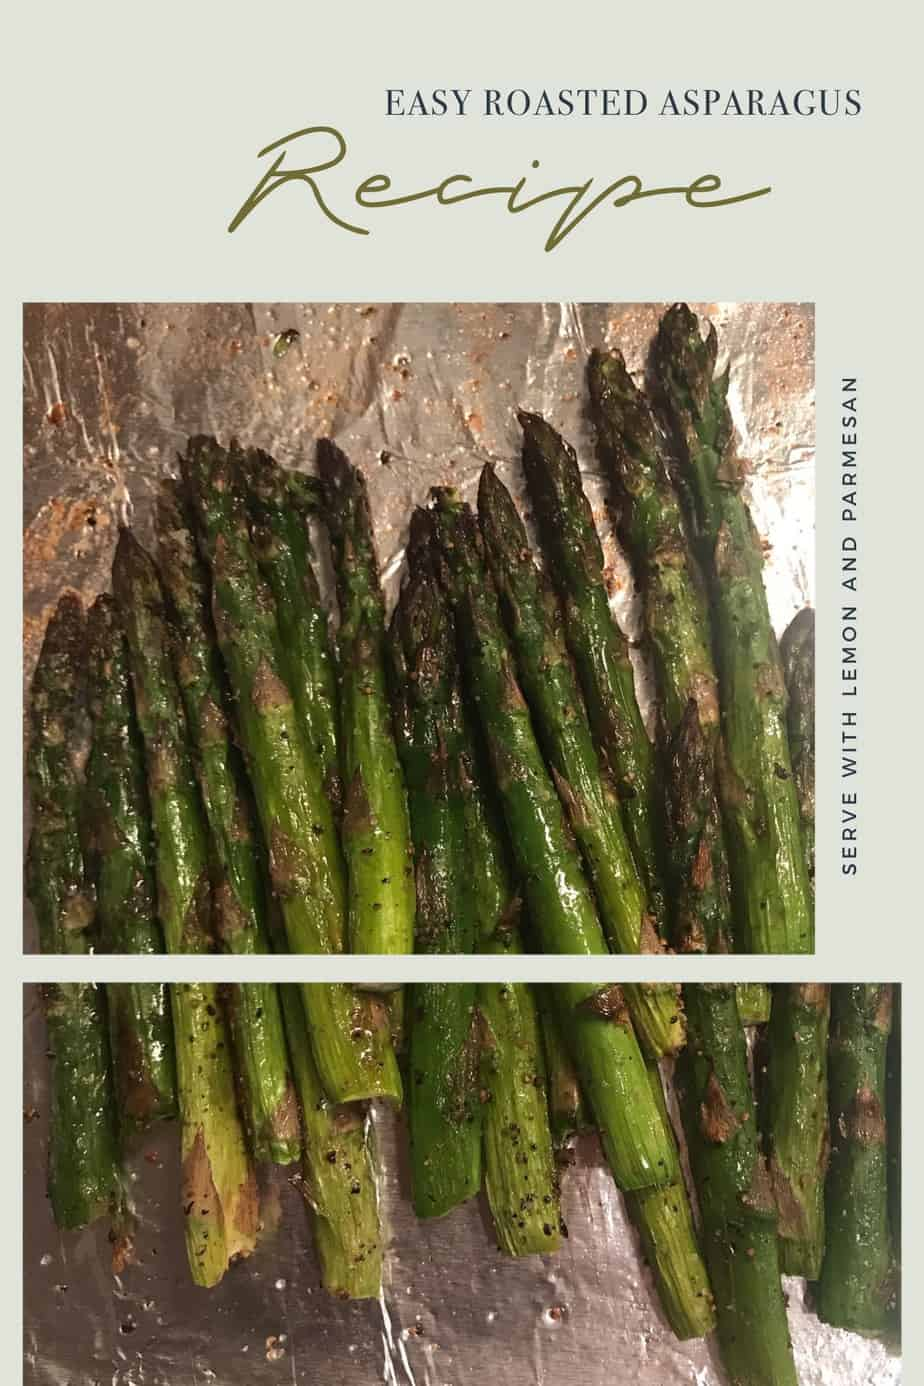 Easy Roasted Asparagus Recipe With Lemon and Parmesan